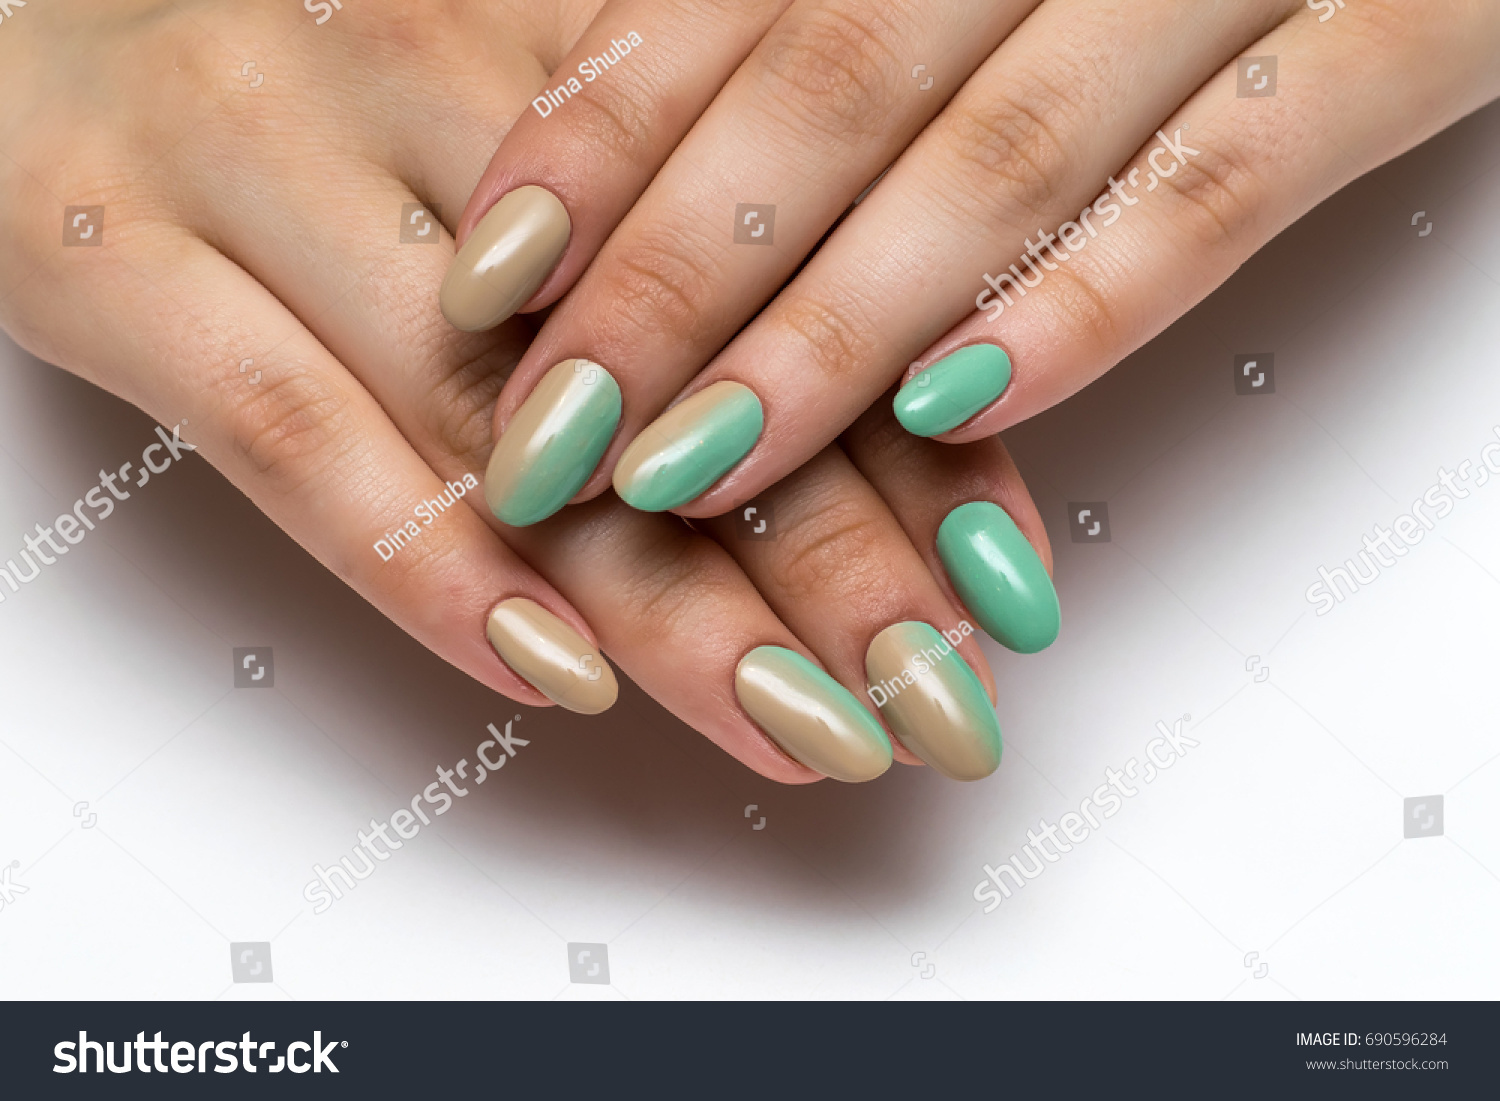 Beige Minty Green Ombre Manicure On Stock Photo (Royalty Free ...